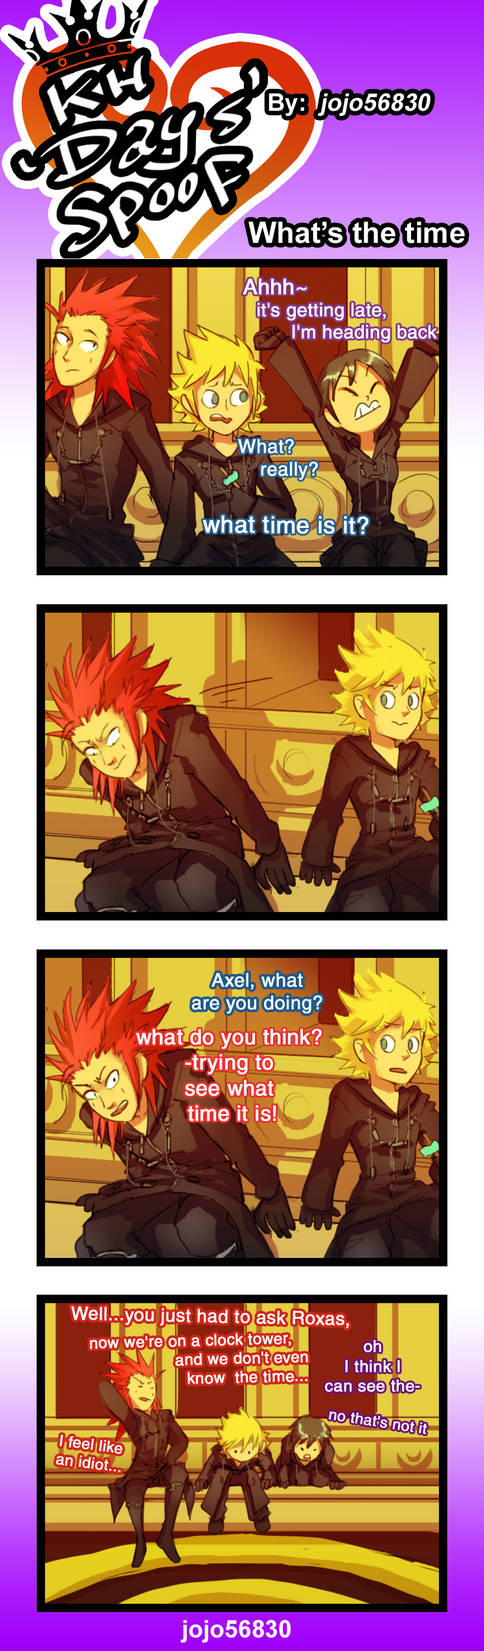 Kh Days Spoof Wts The Time By Jojo56830 On Deviantart